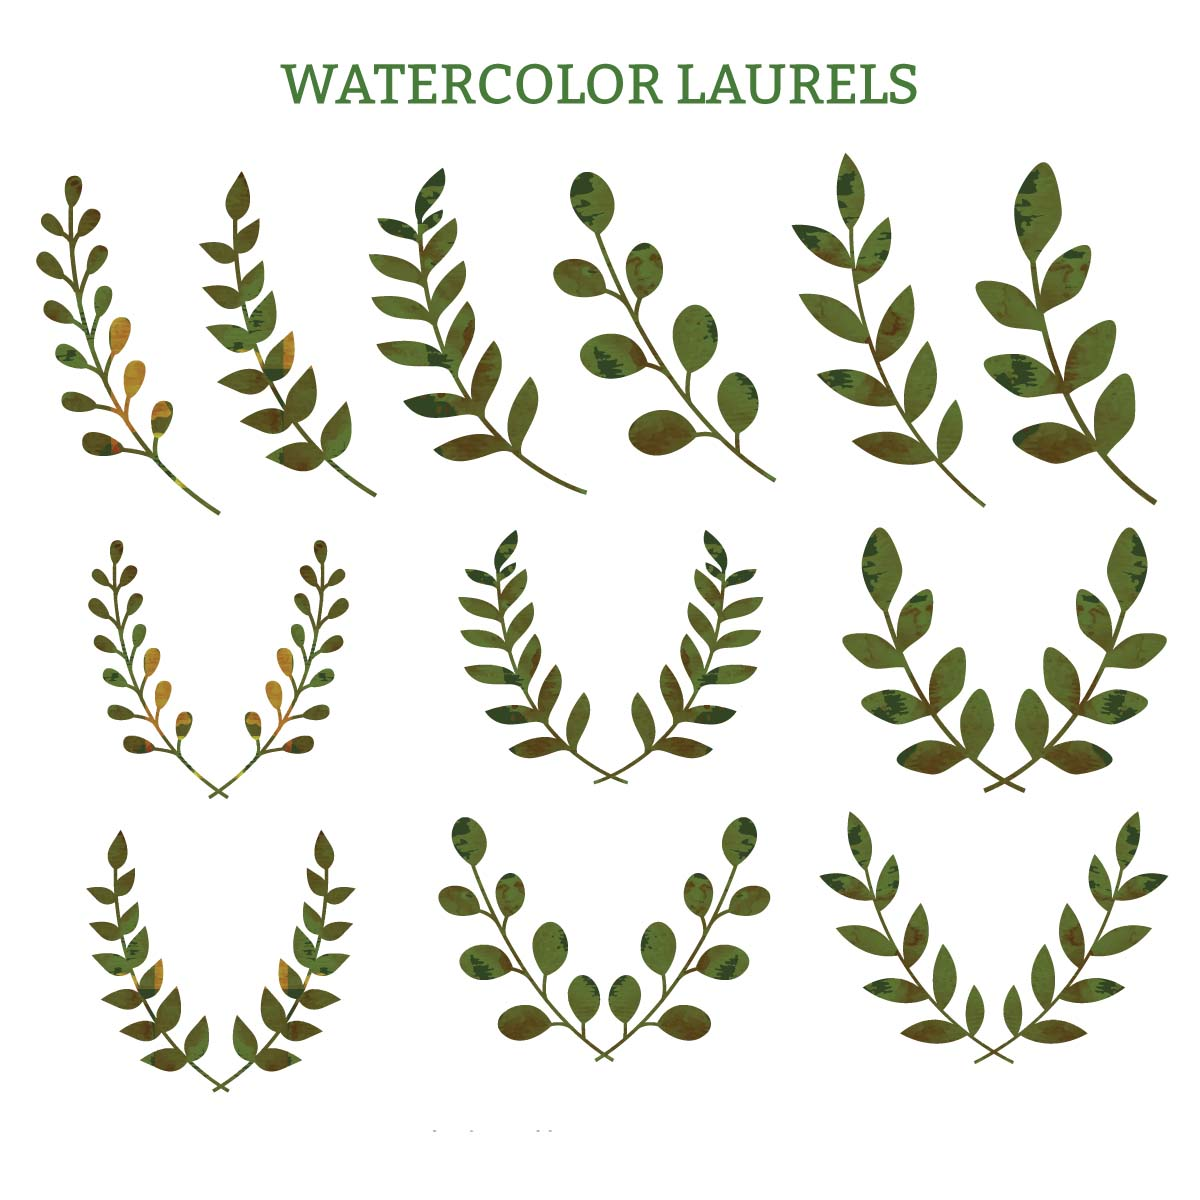 Laurel clipart. Watercolor laurels green decorative clipart black and white stock